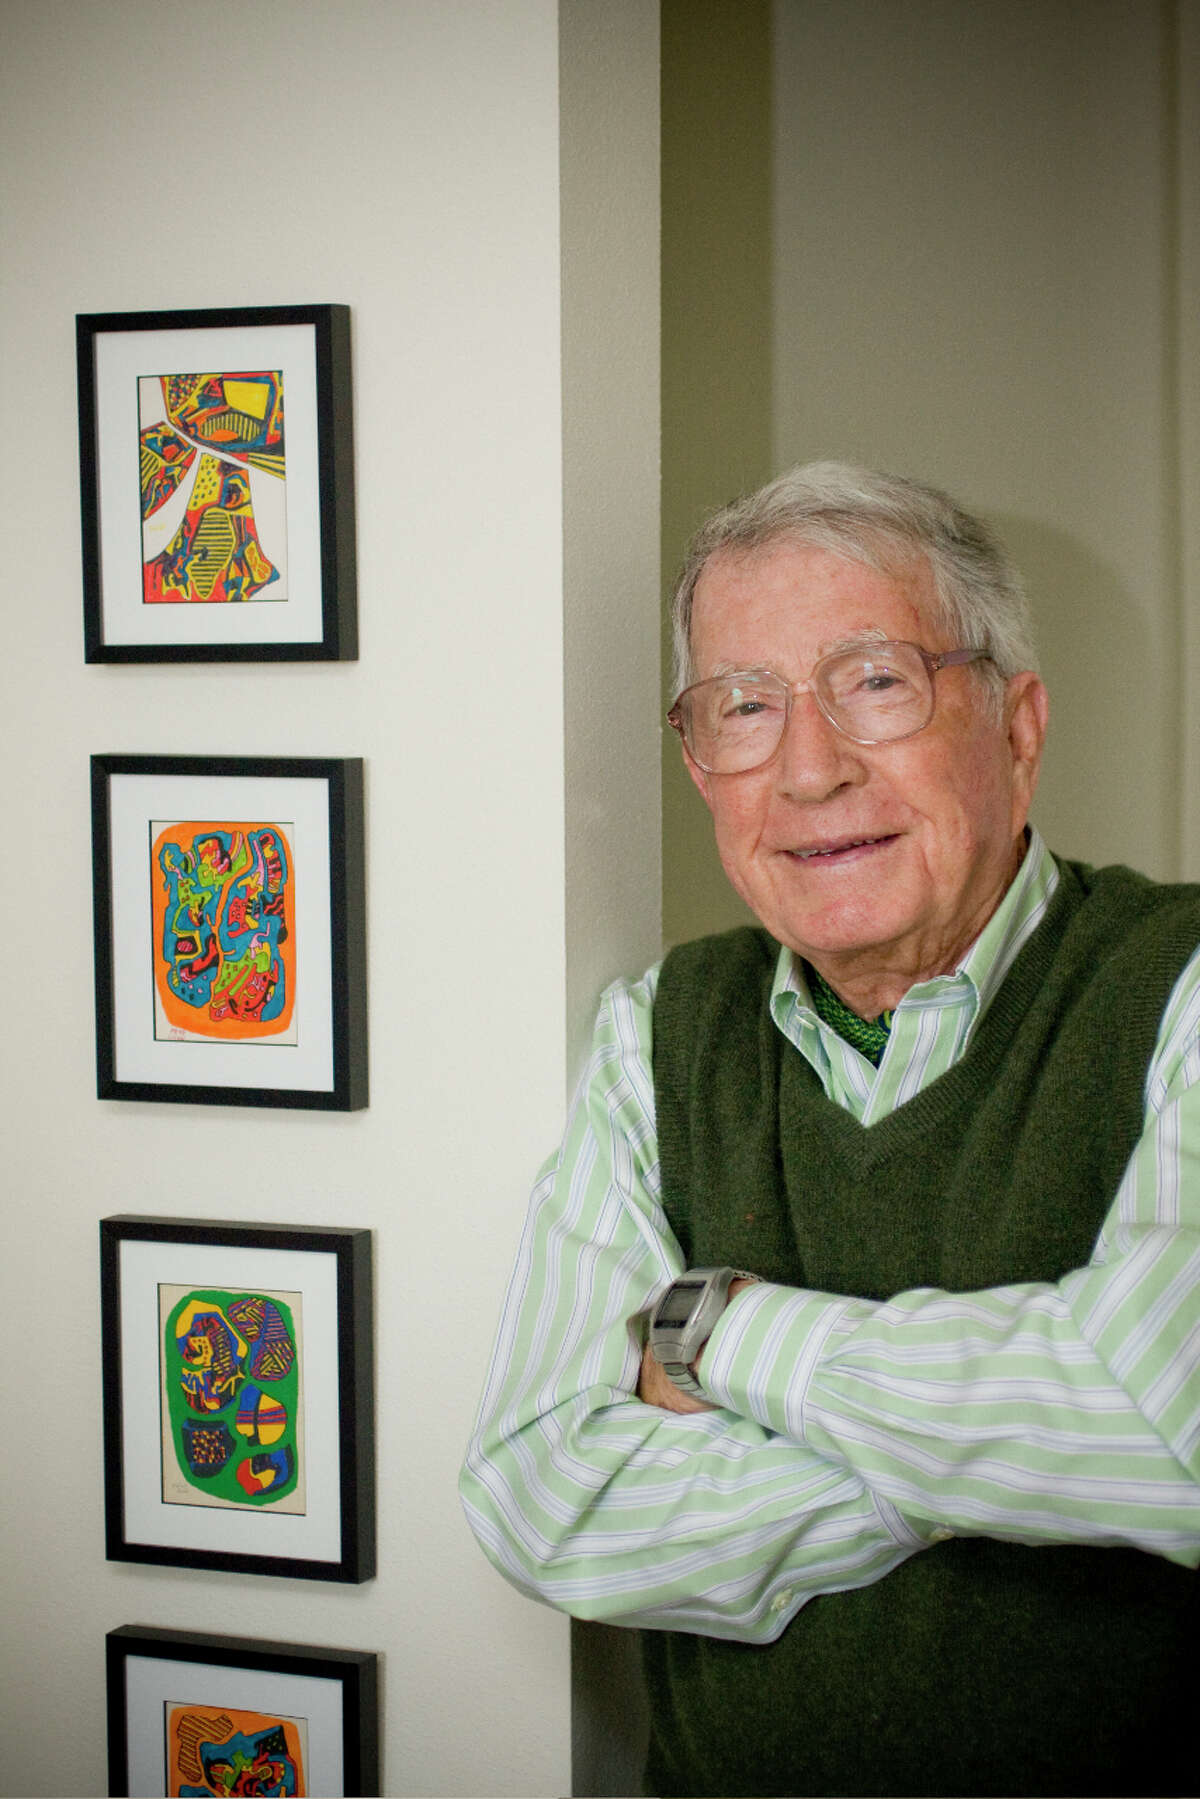 Frank O. Hamilton, a ceramist who taught himself to paint, worked primarily in acrylics.